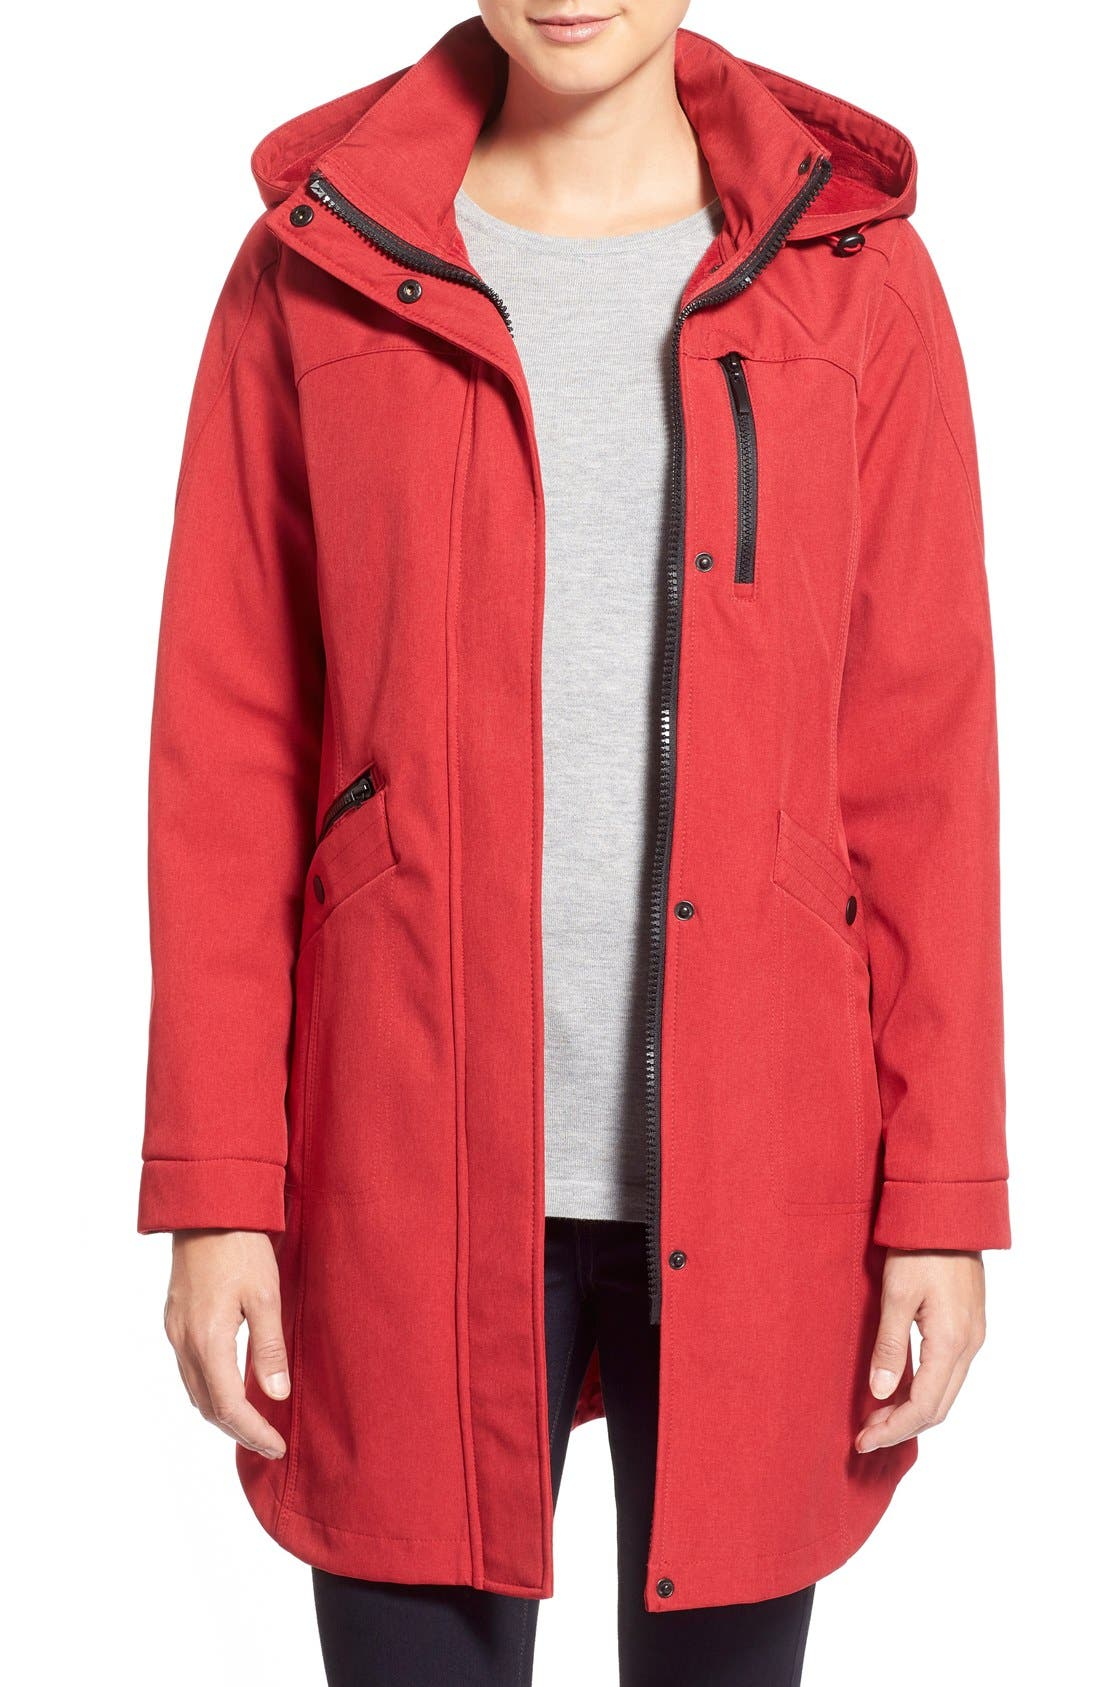 Crossdye Hooded Soft Shell Jacket,                             Main thumbnail 6, color,